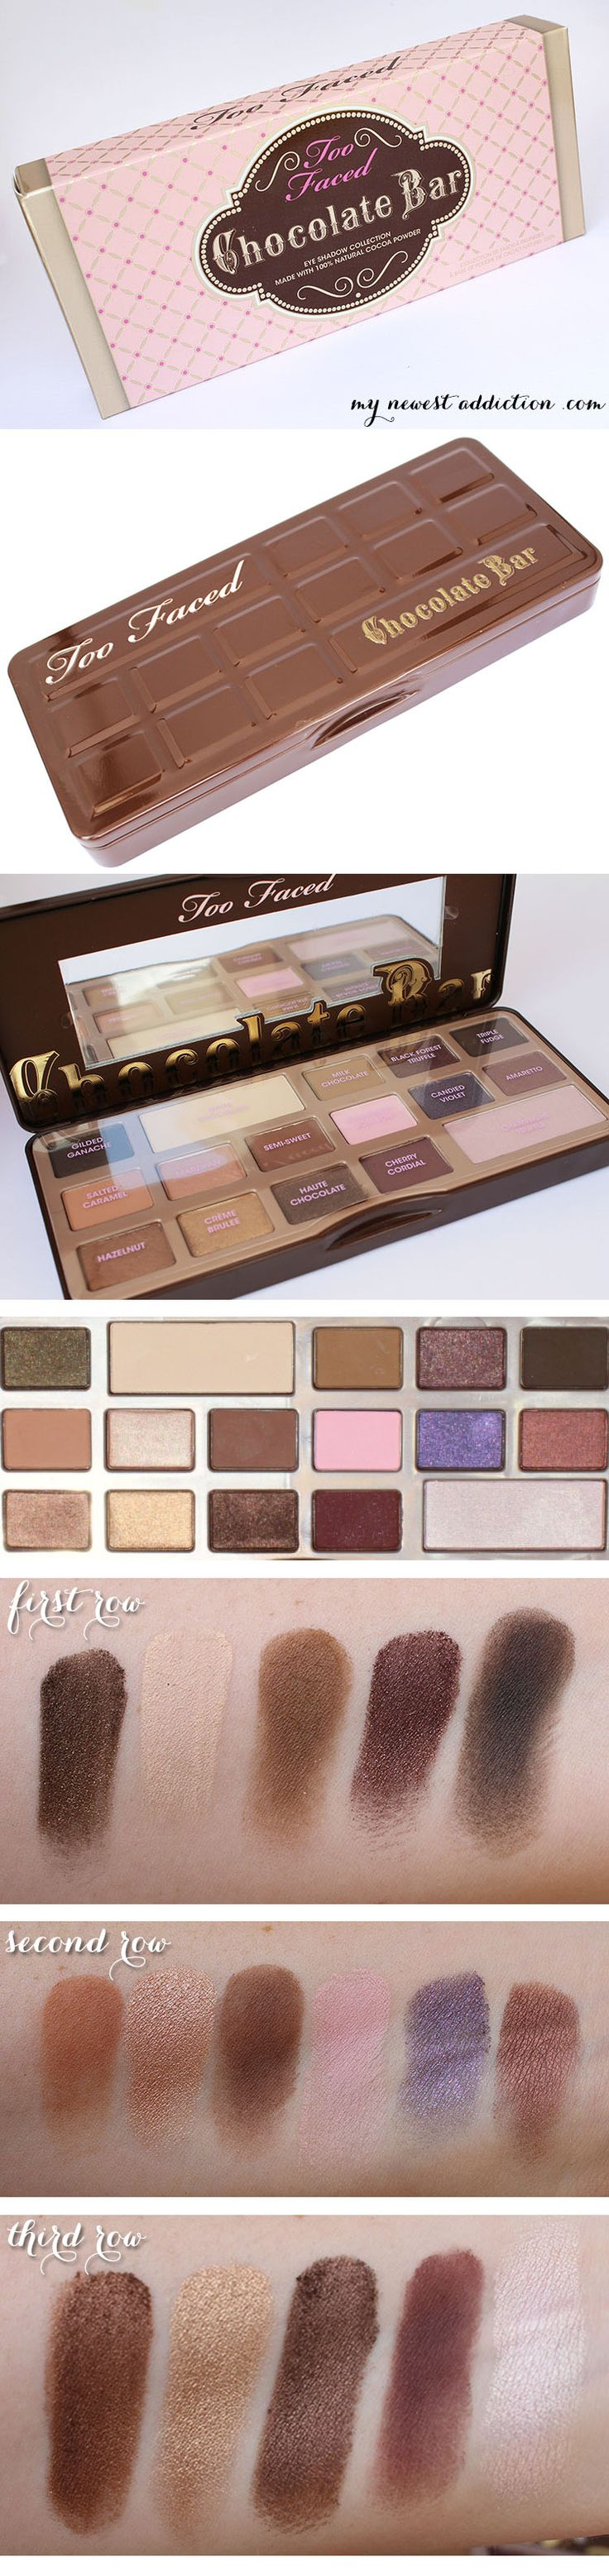 too faced chocolate bar giveaway http://www.mynewestaddiction.com/2014/06/summer-kick-giveaway.html